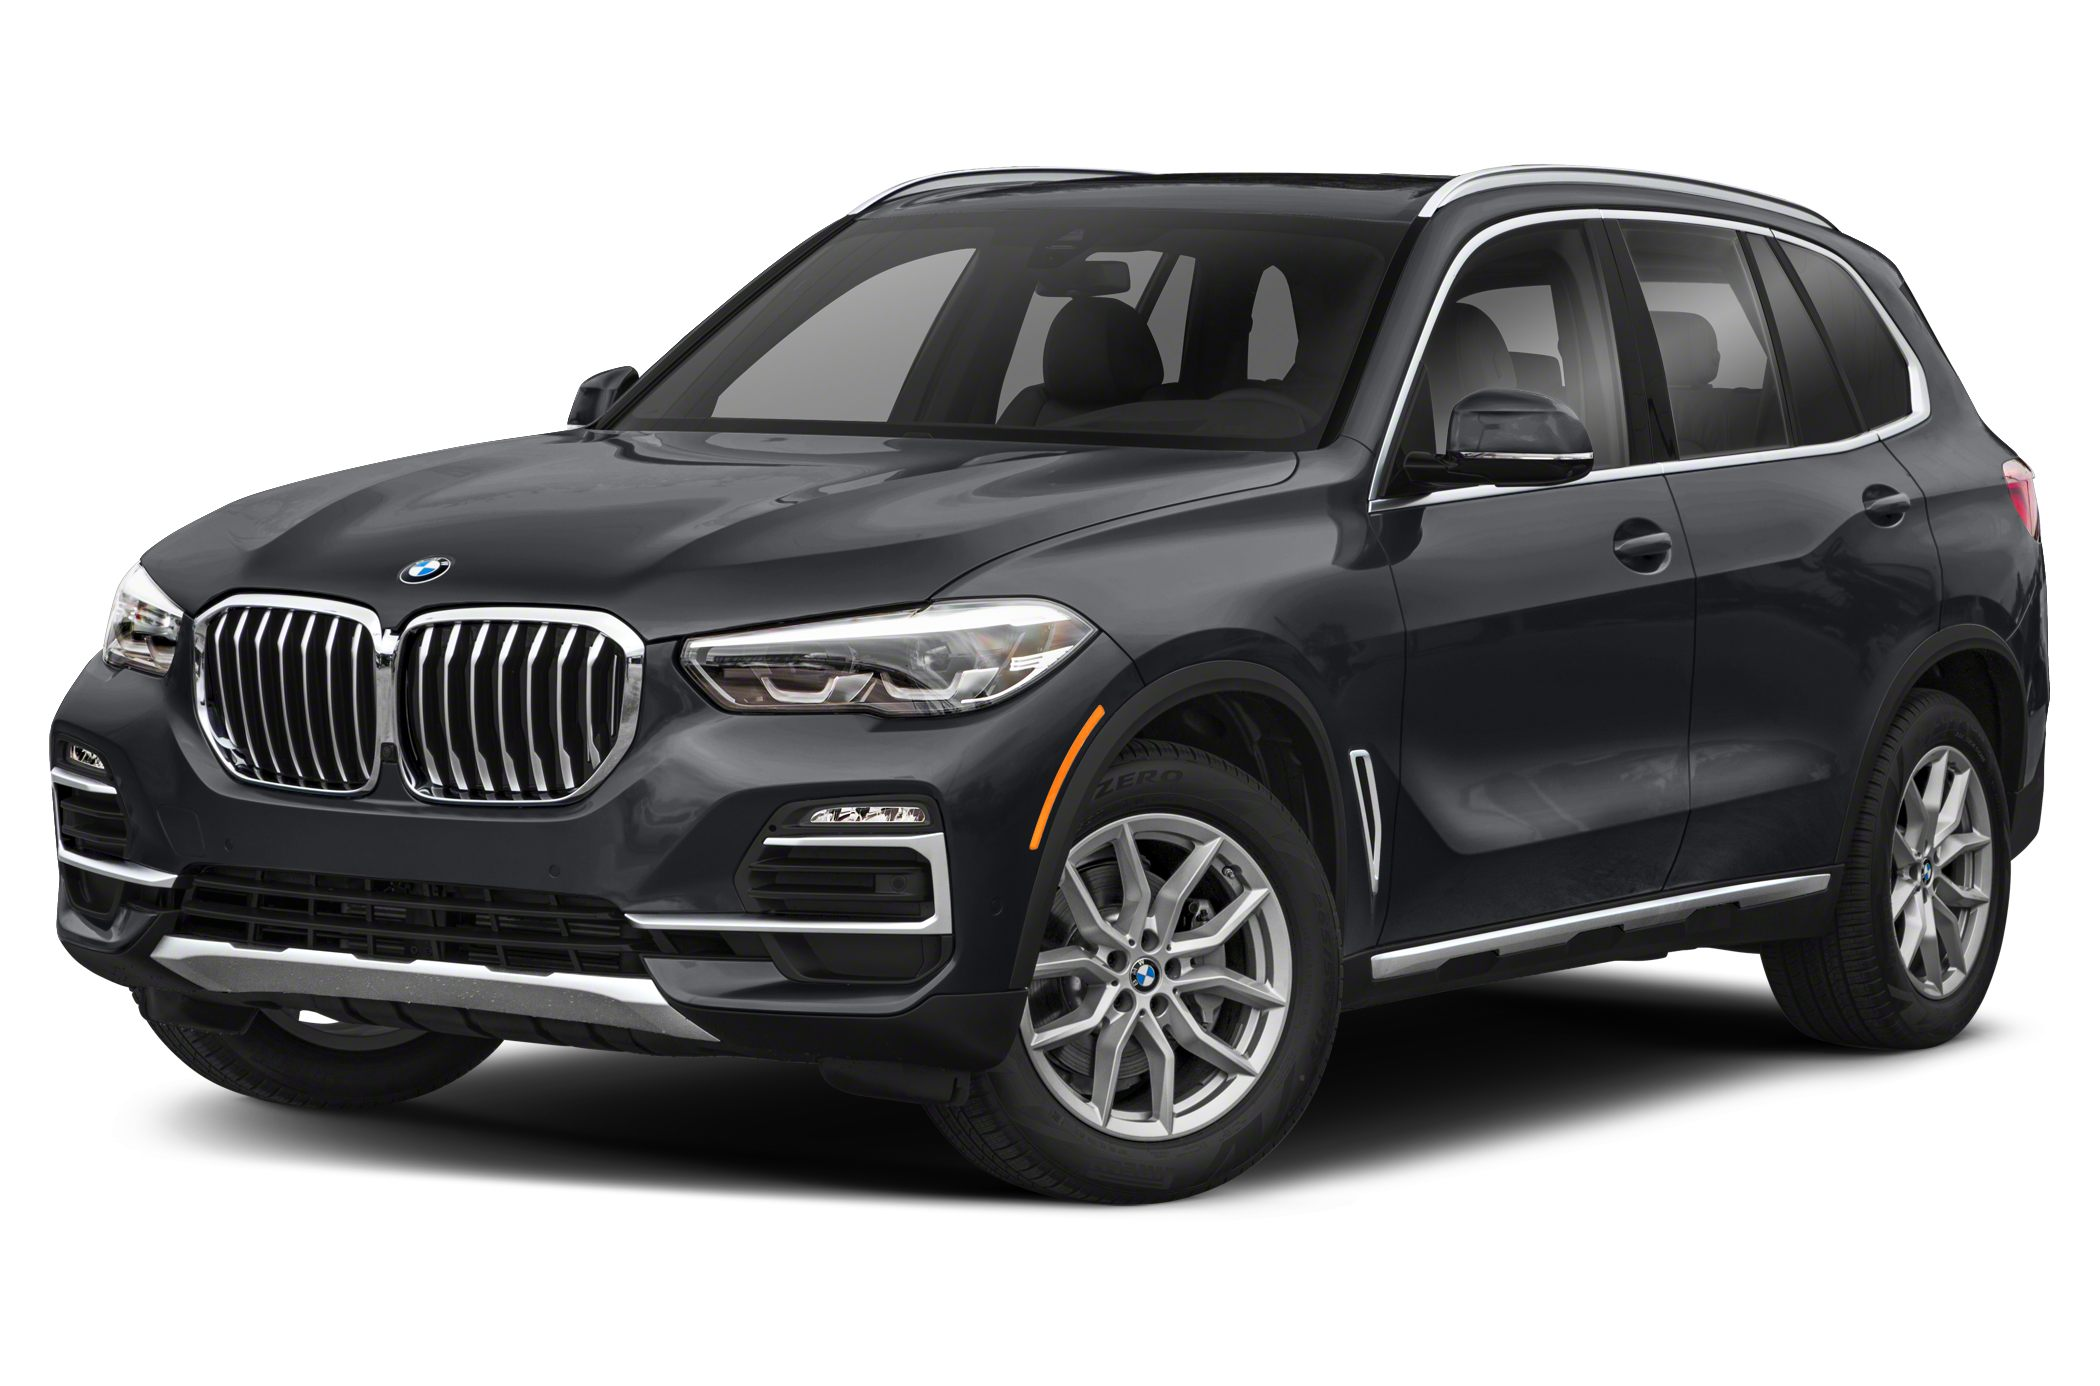 2020 Bmw X5 Xdrive40i 4dr All Wheel Drive Sports Activity Vehicle Specs And Prices